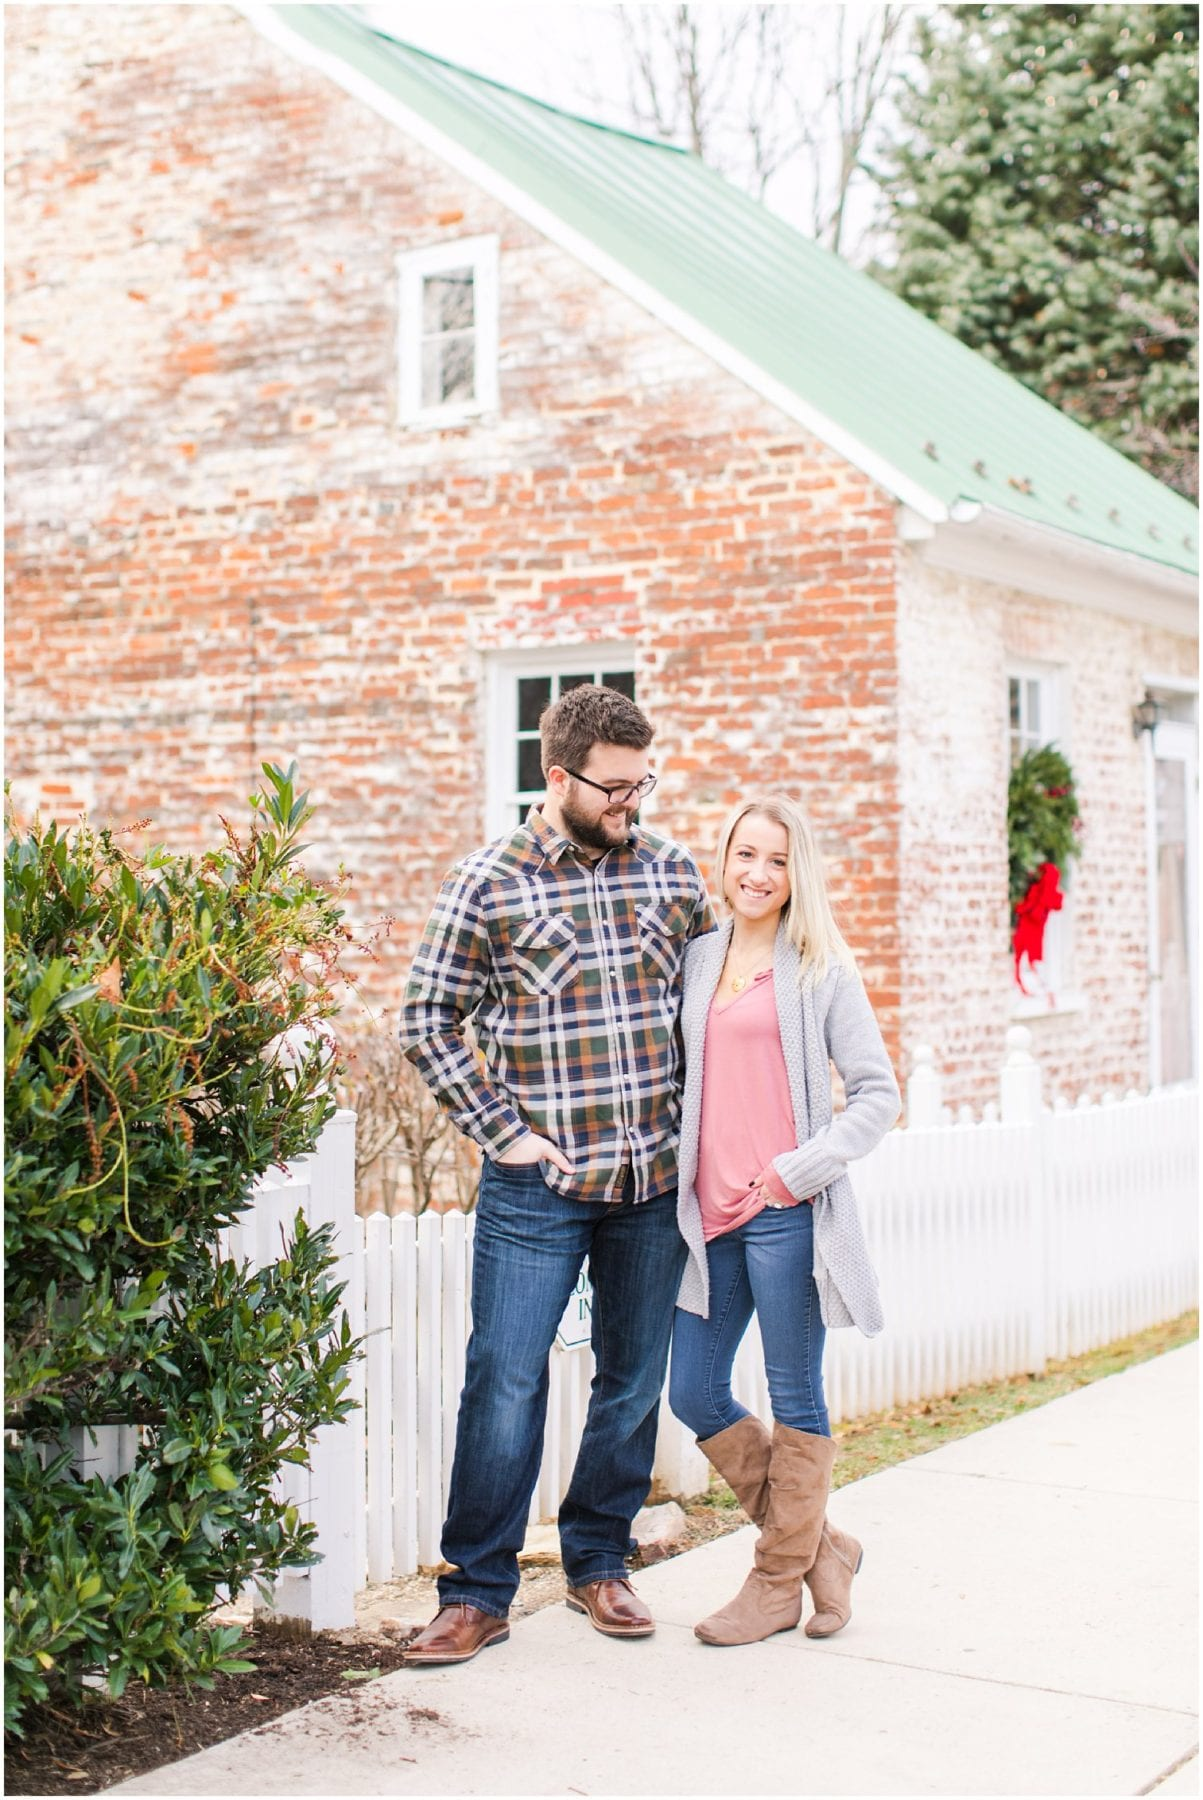 Downtown Middleburg Engagement Photos Virginia Wedding Photographer Megan Kelsey Photography Blair & Mike-55.jpg